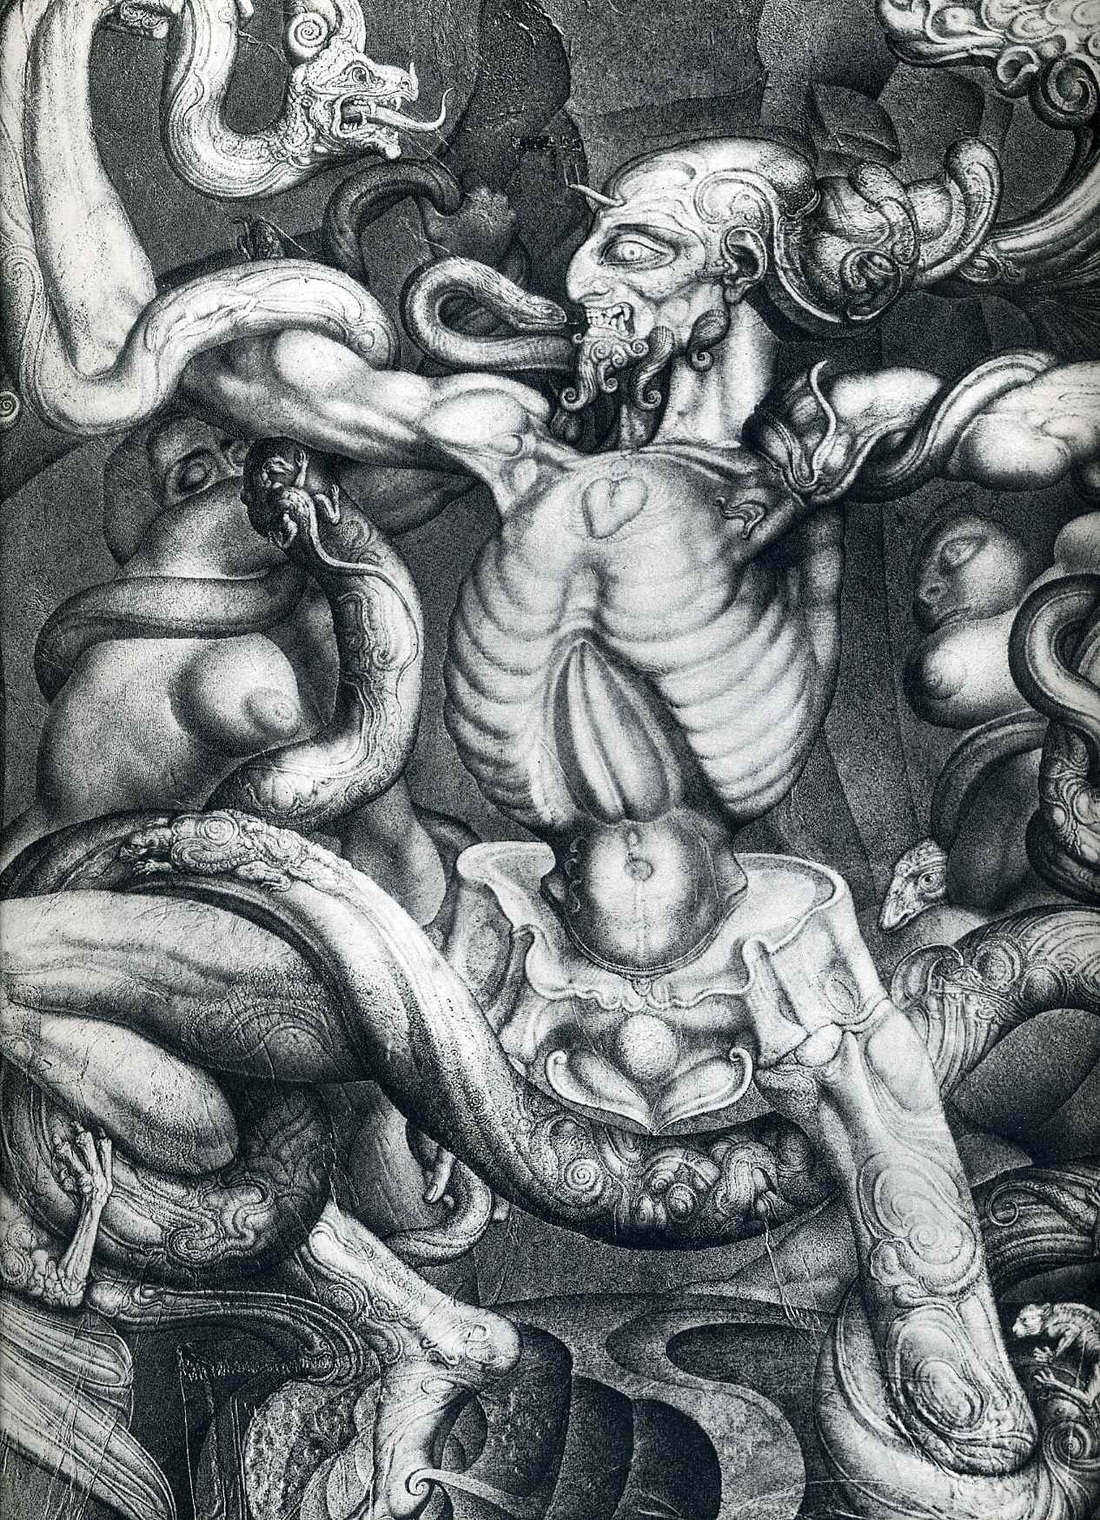 Ernst Fuchs, The Anti-Laokoon, 1965